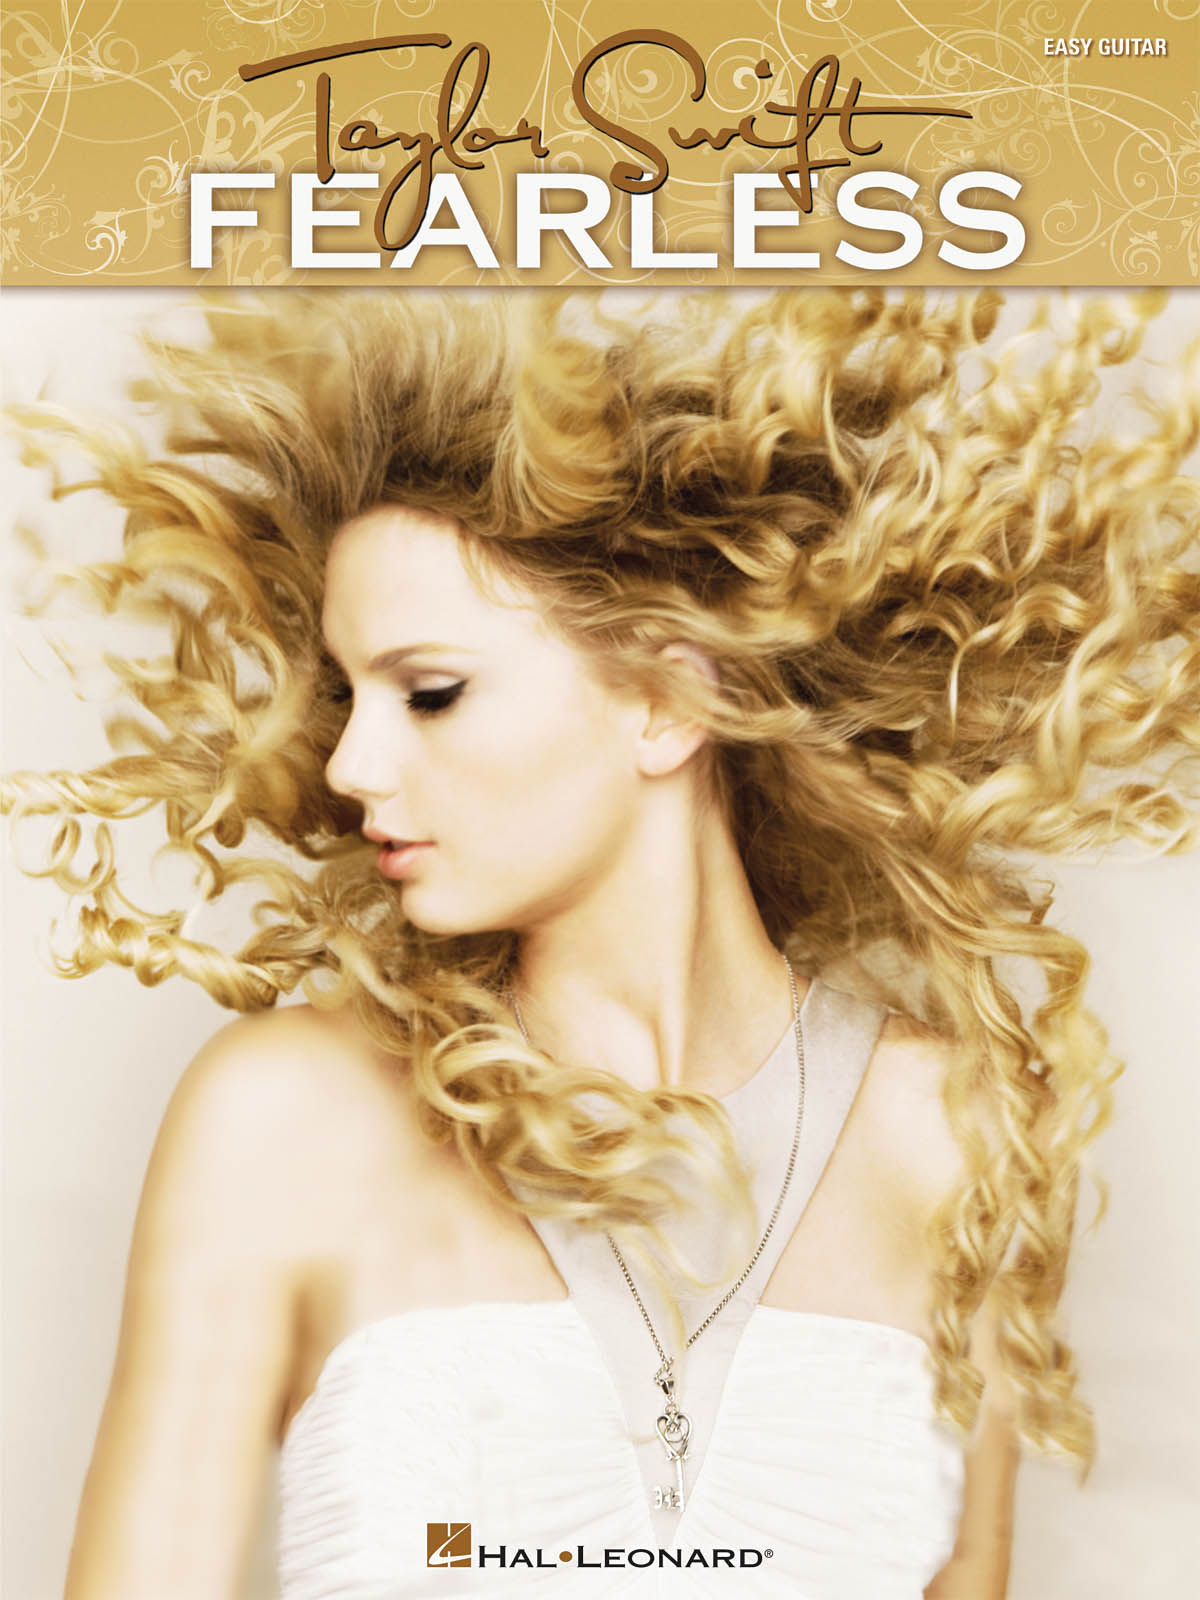 Taylor Swift: Taylor Swift Fearless - Easy Guitar: Guitar Solo: Album Songbook